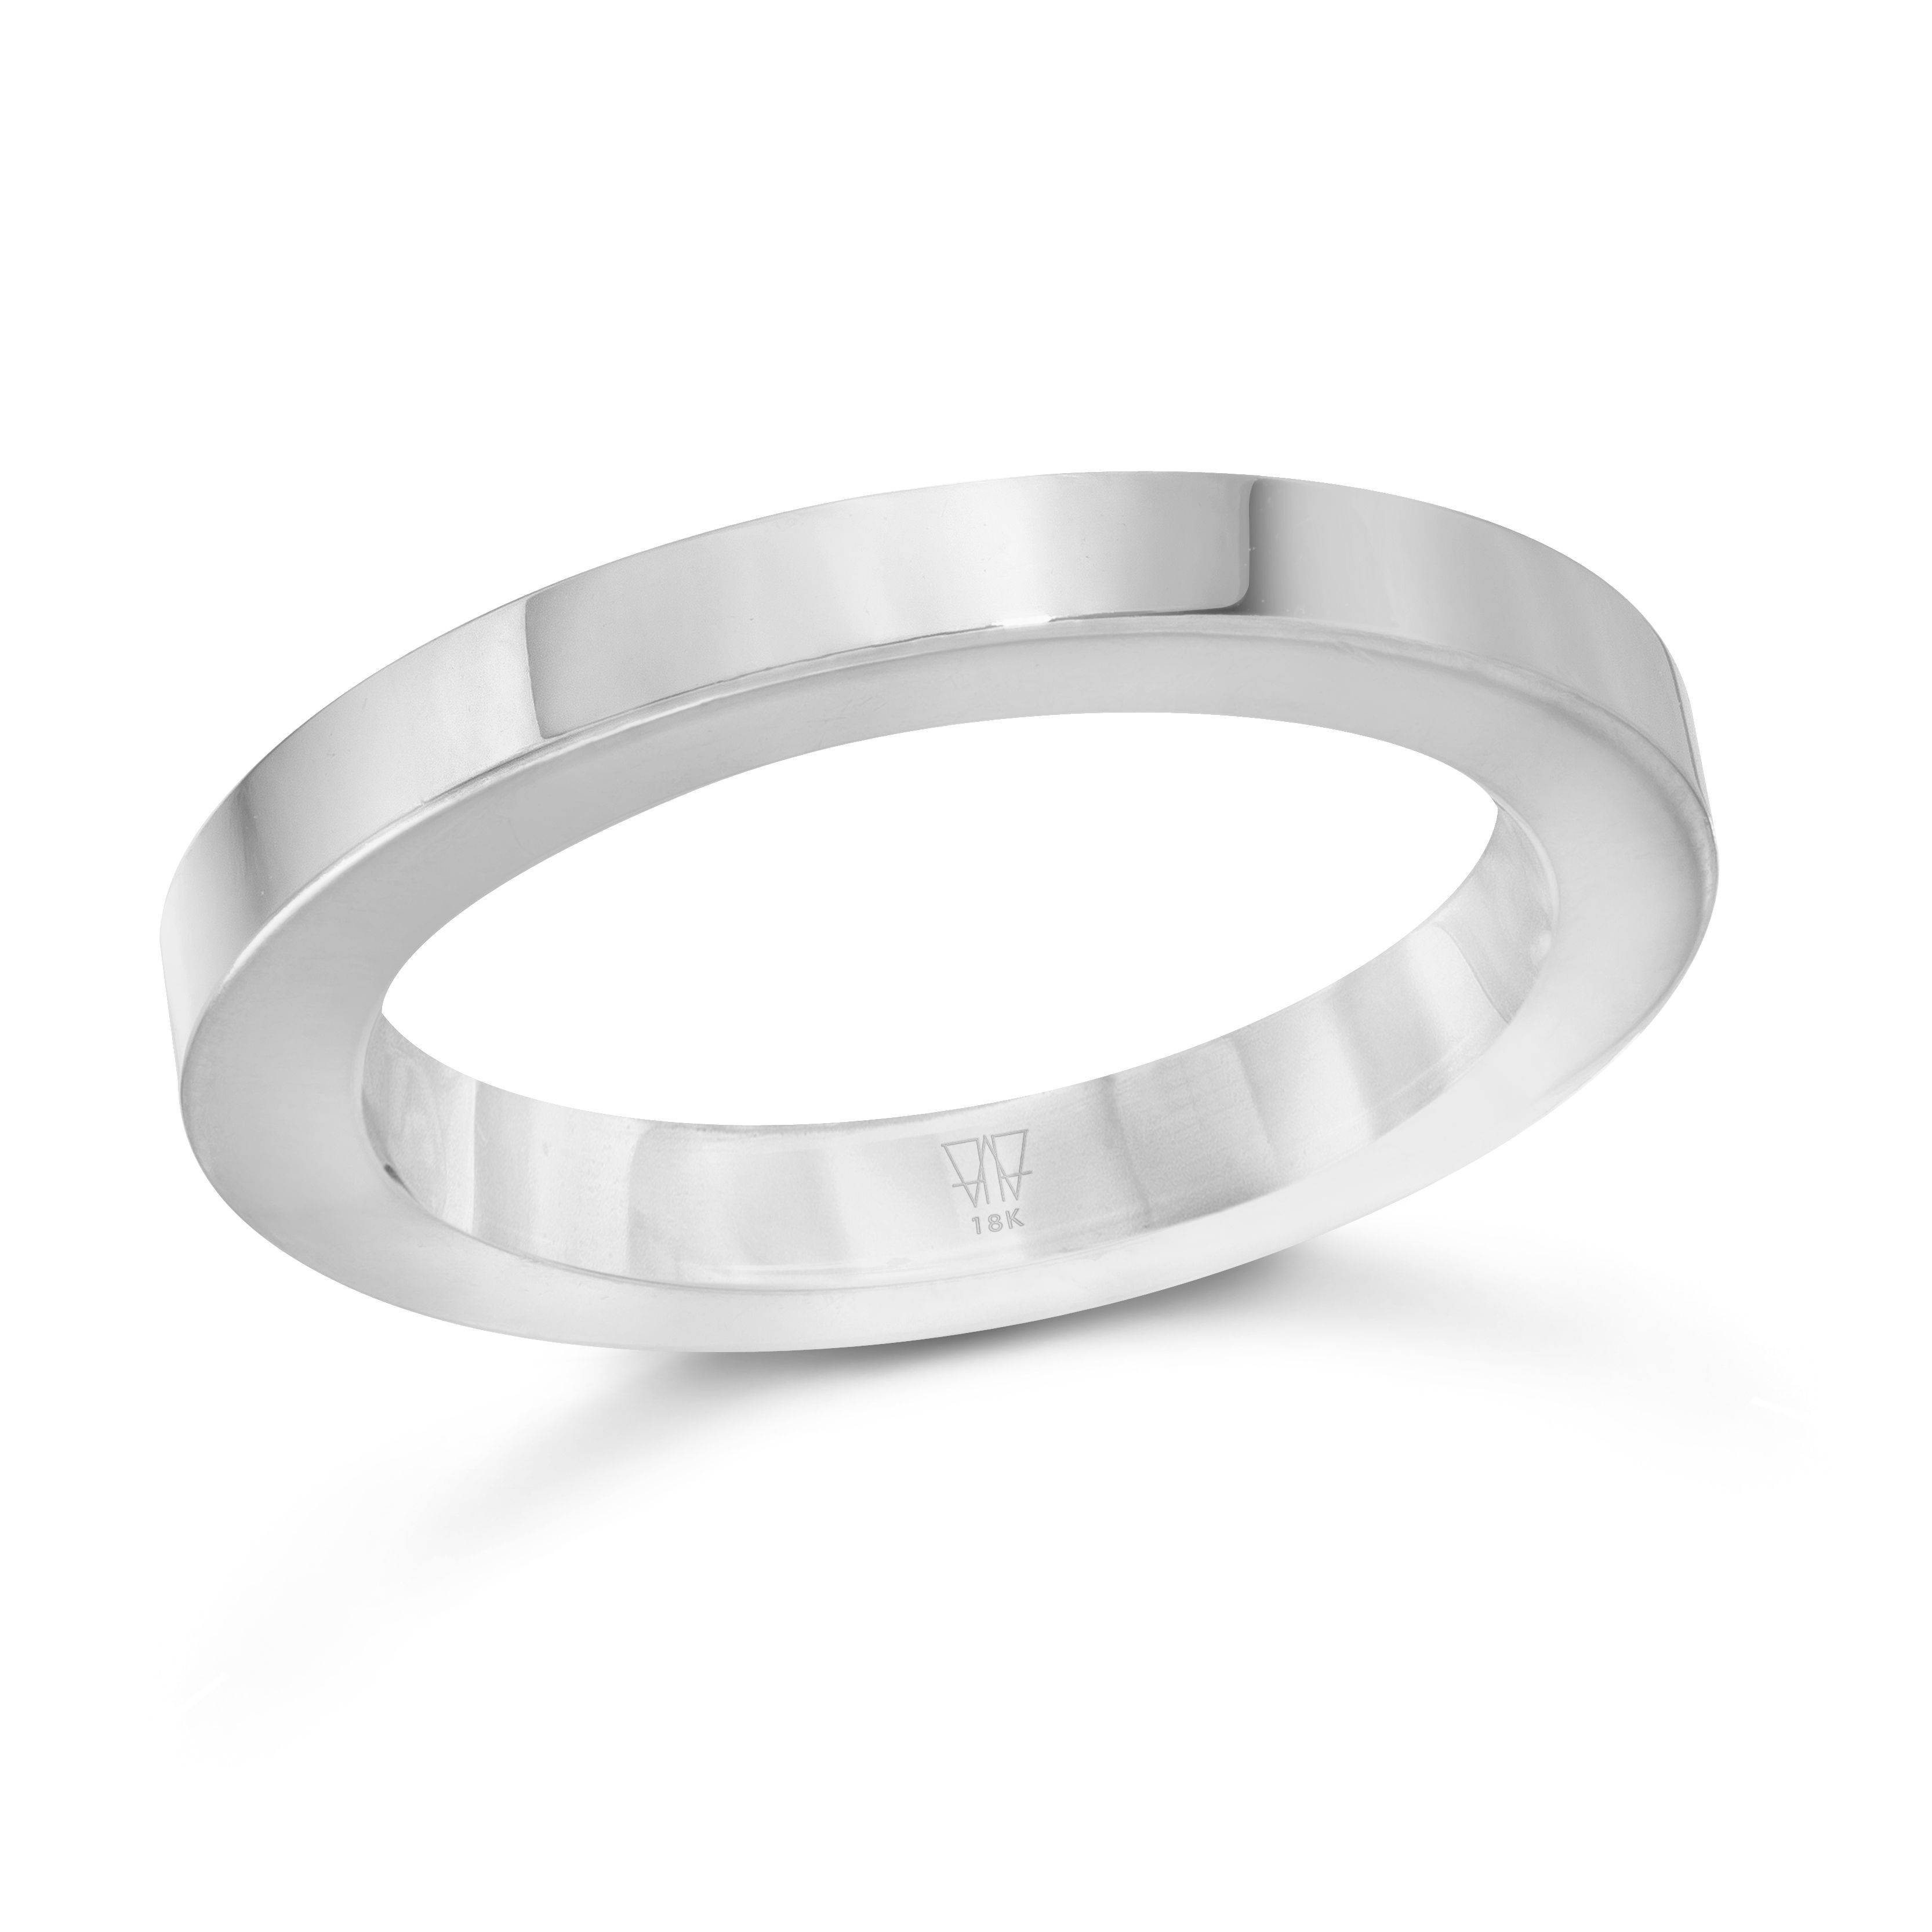 GRANT 18K White Gold 3mm Cubed Band Ring Rings, Band